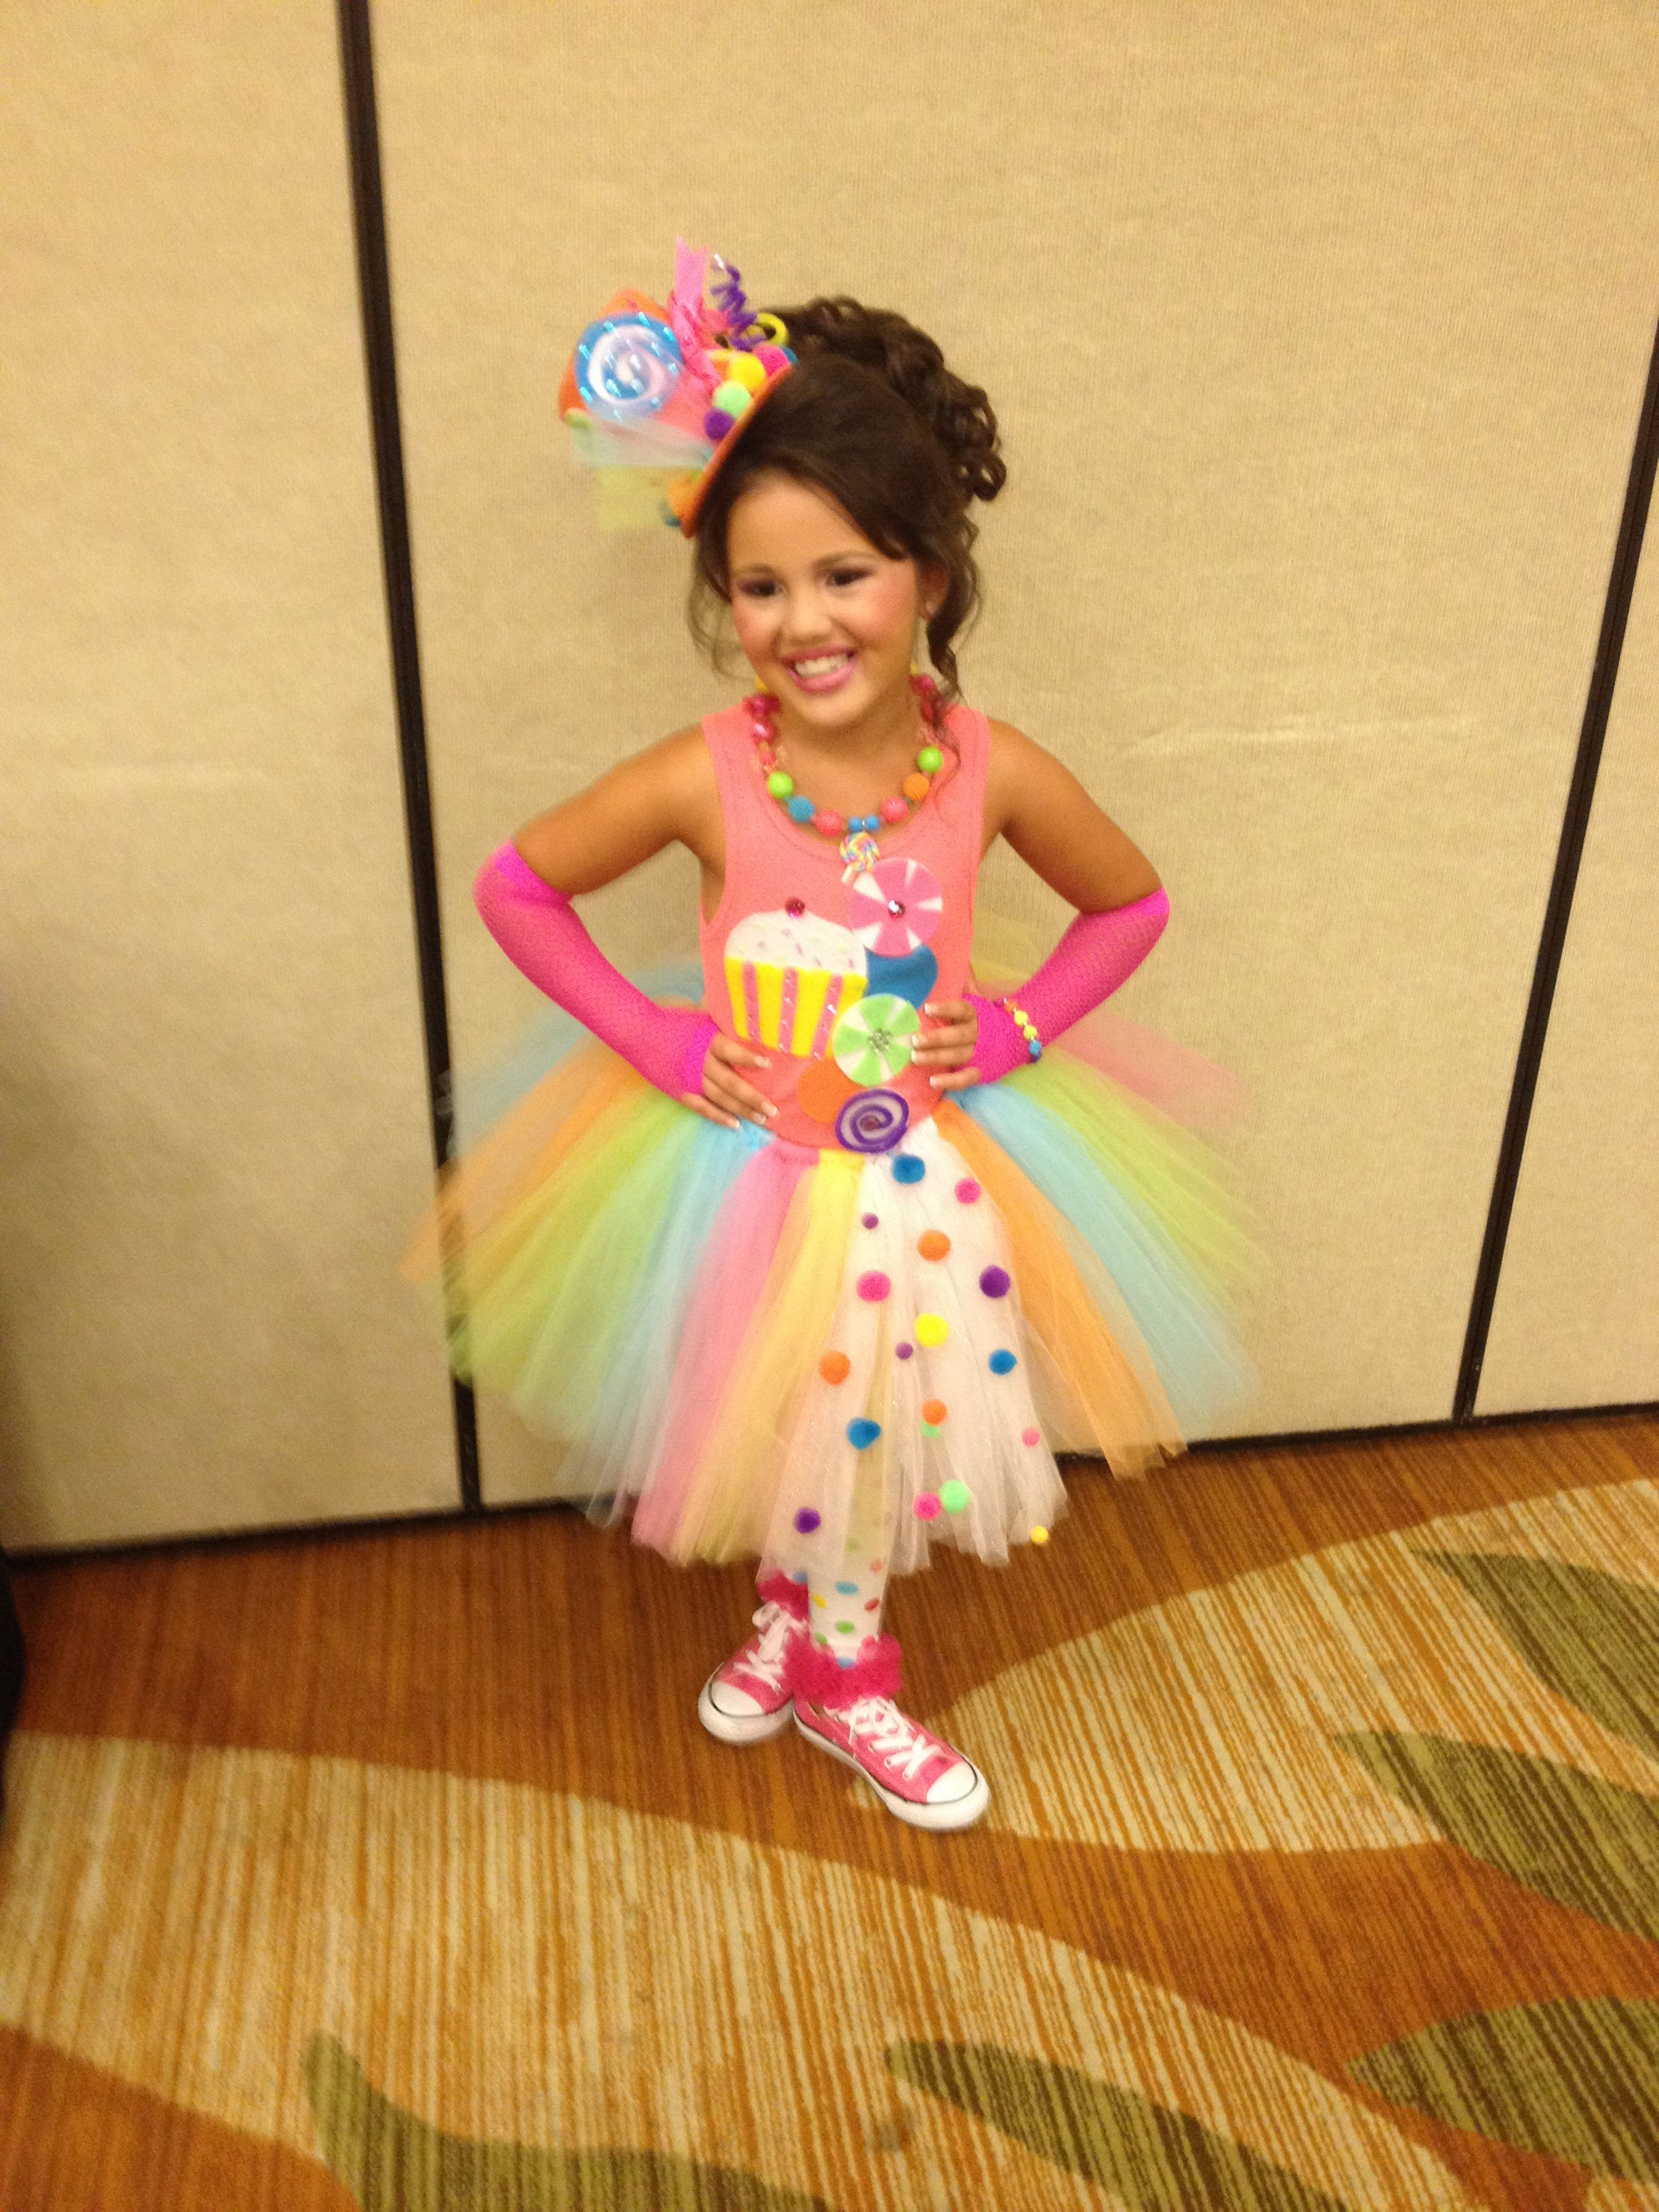 f2b49279ddf6 Candy themed Outfit of Choice - all made from items at Walmart ...